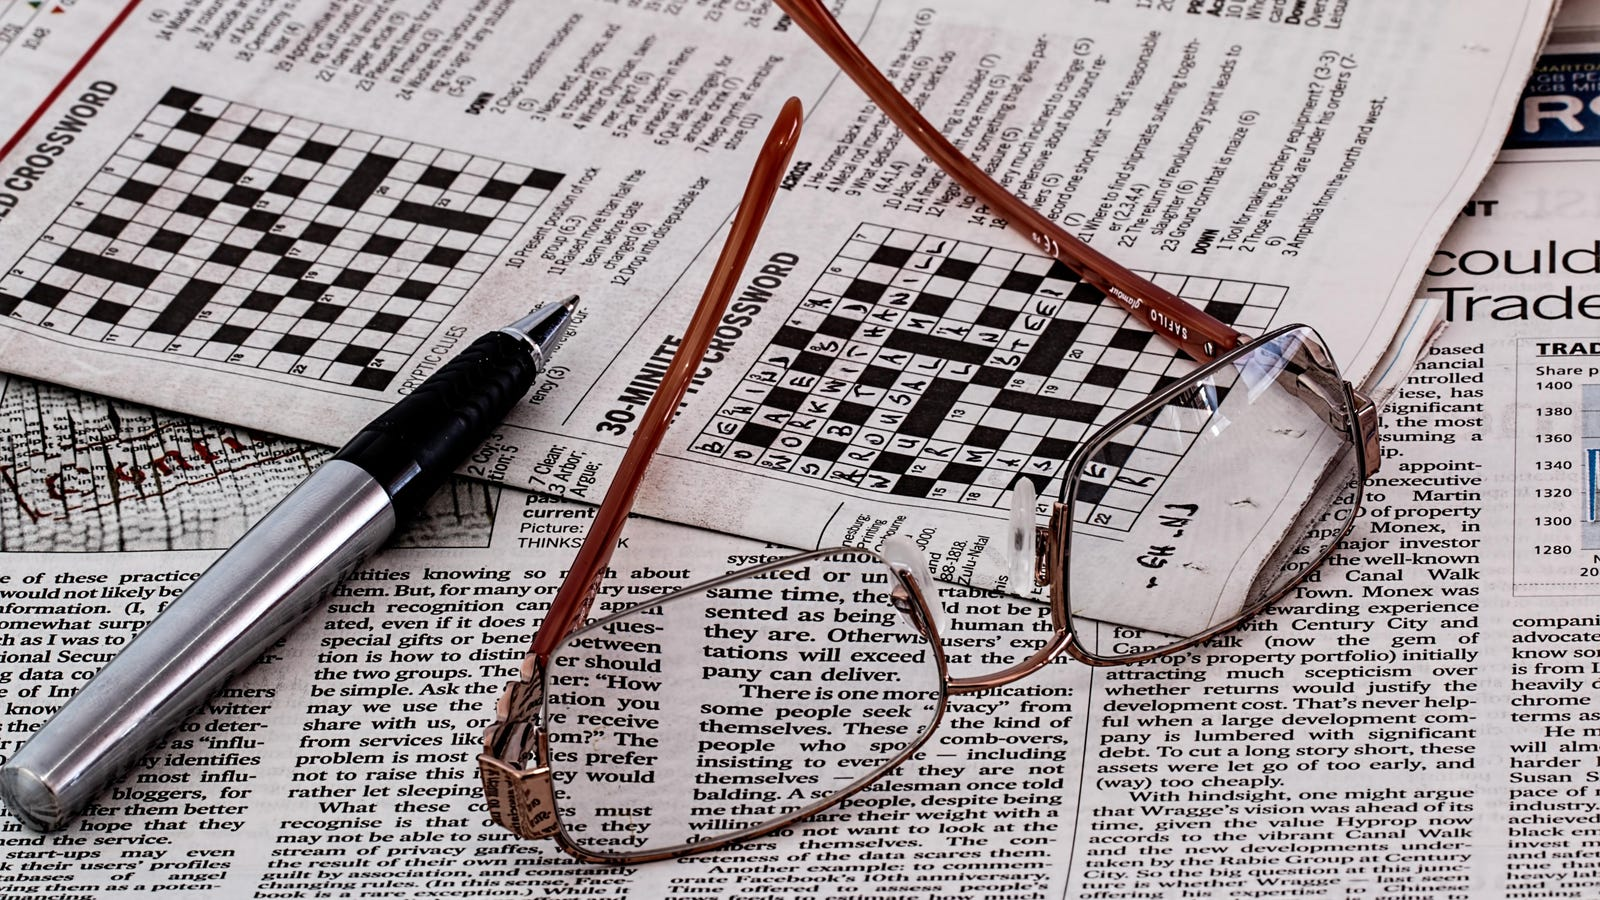 How to Get Better at Crosswords